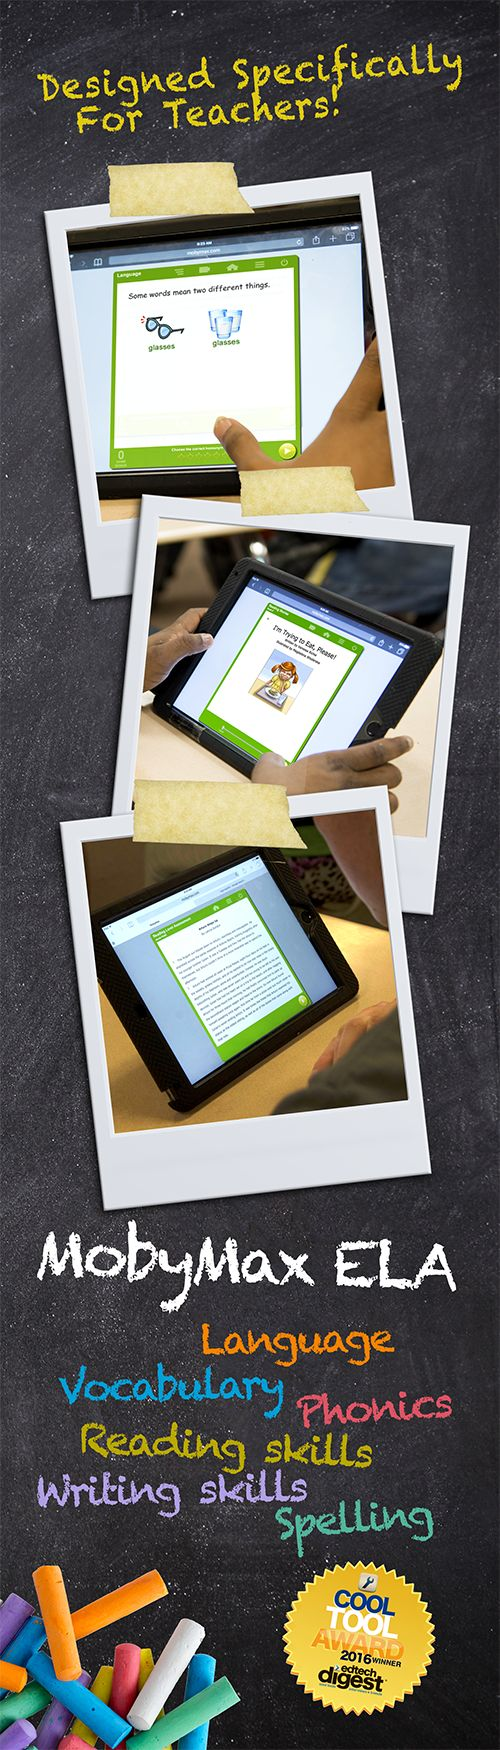 MobyMax ELA Curriculum for K-8 Schools - Free Touch Curriculum™ builds & reinforces language, vocabulary, phonics, reading, writing, and spelling skills. MobyMax's adaptive curriculum lets gifted students progress as quickly as they like while ensuring that remedial students get the extra instruction they need.  MobyMax includes all K-8 subjects and is specifically designed for teachers.